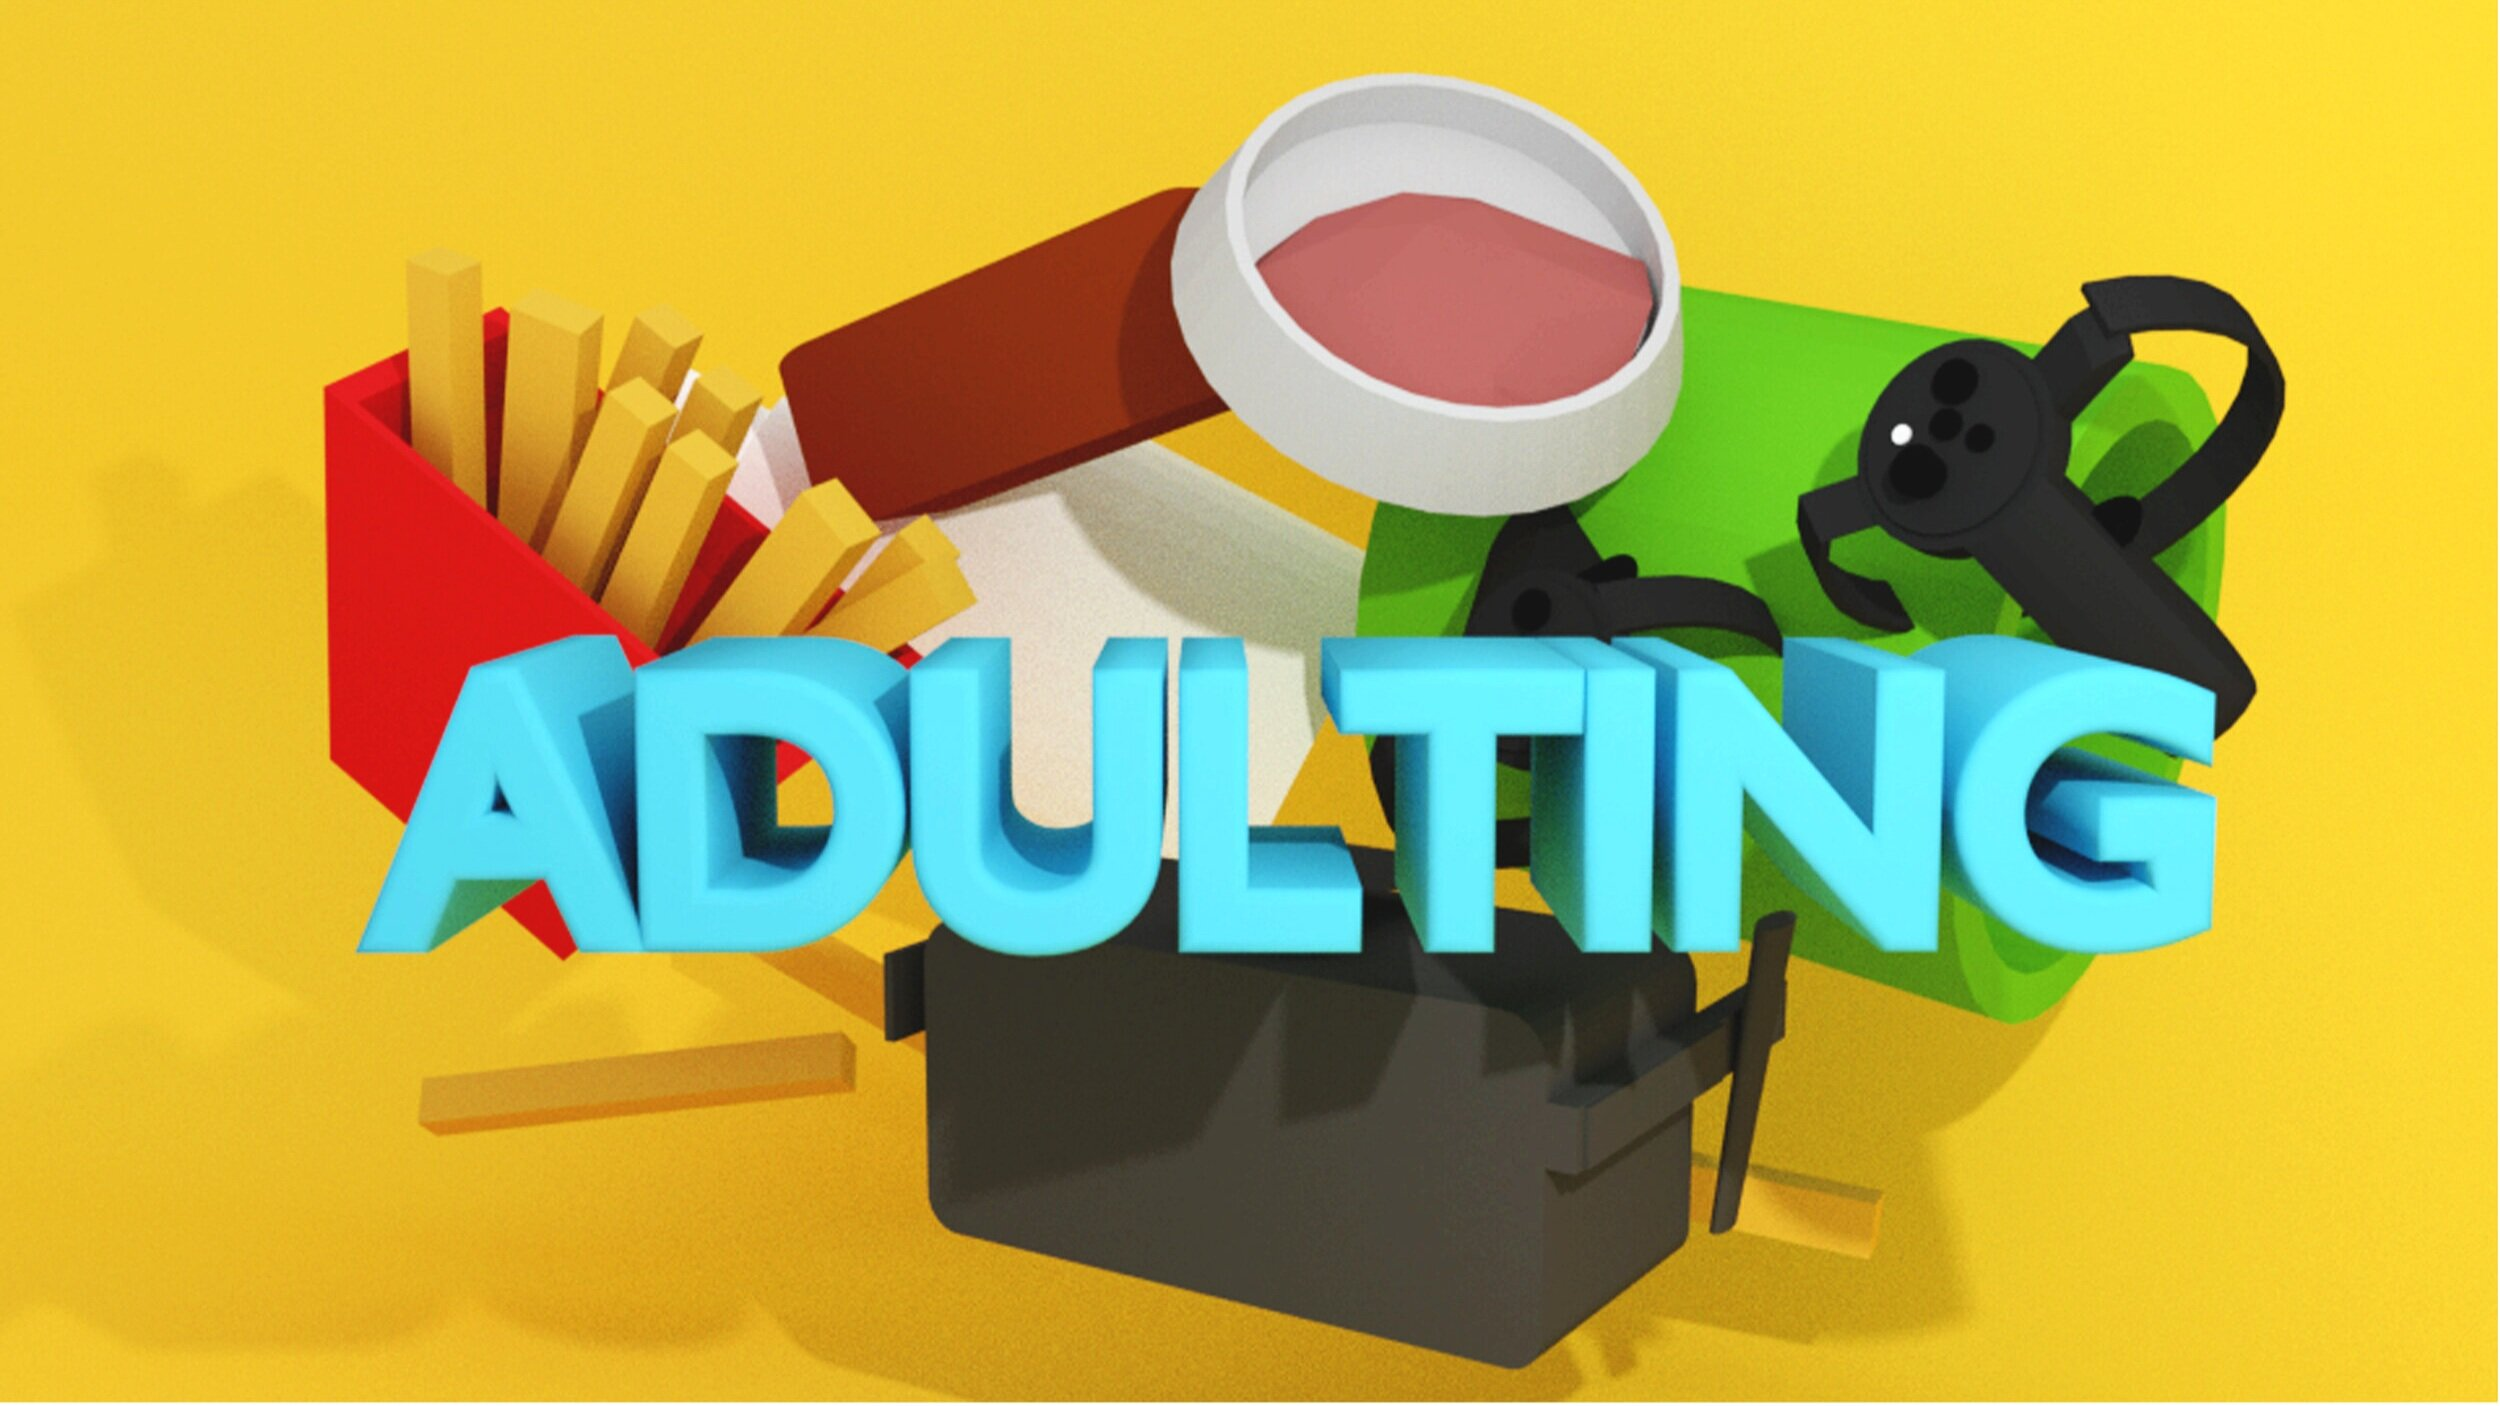 Adulting+Poster.jpg